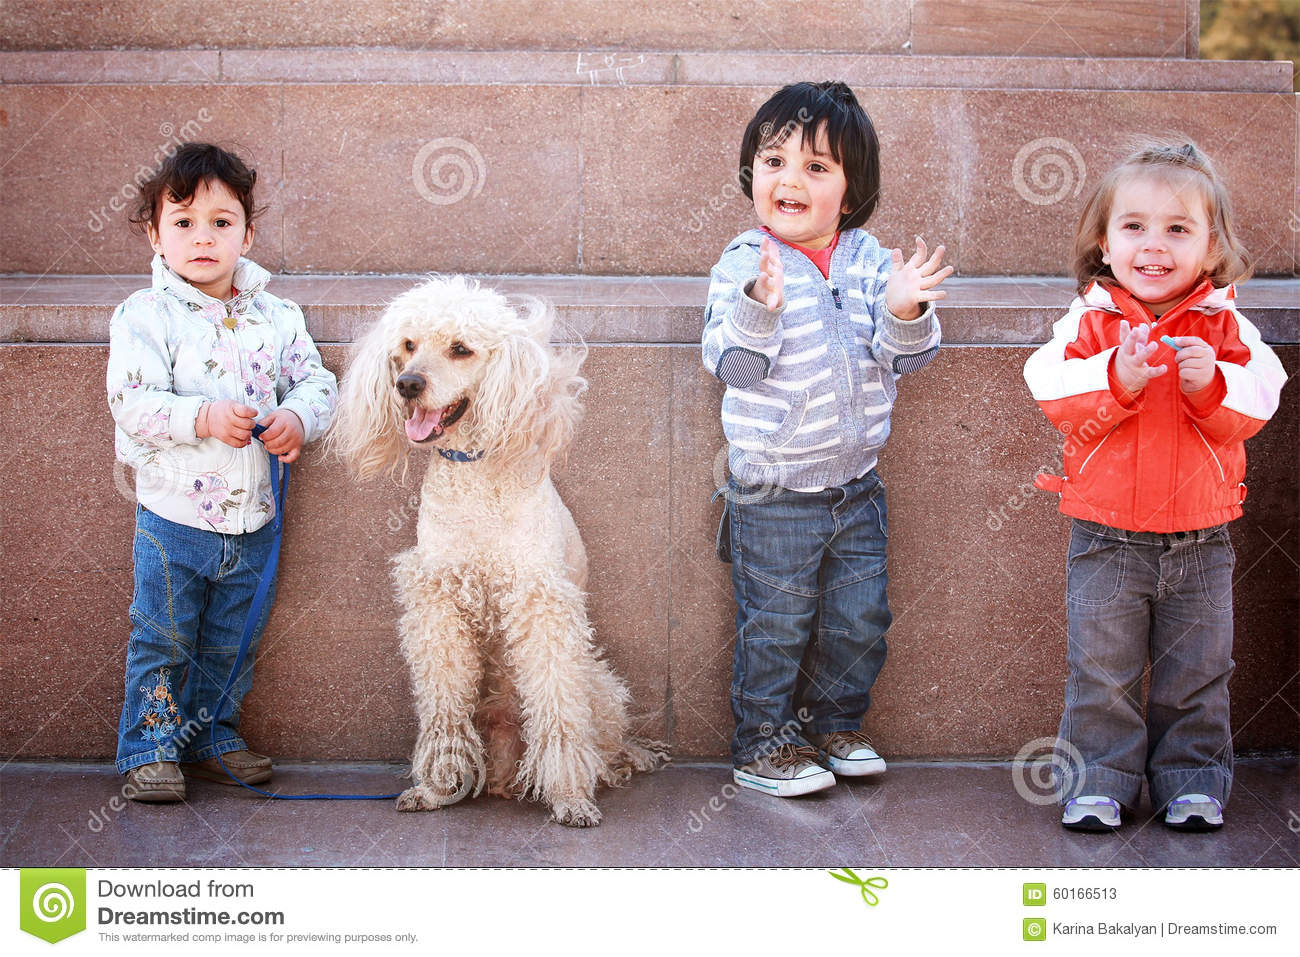 Three happy young children with pet dog.